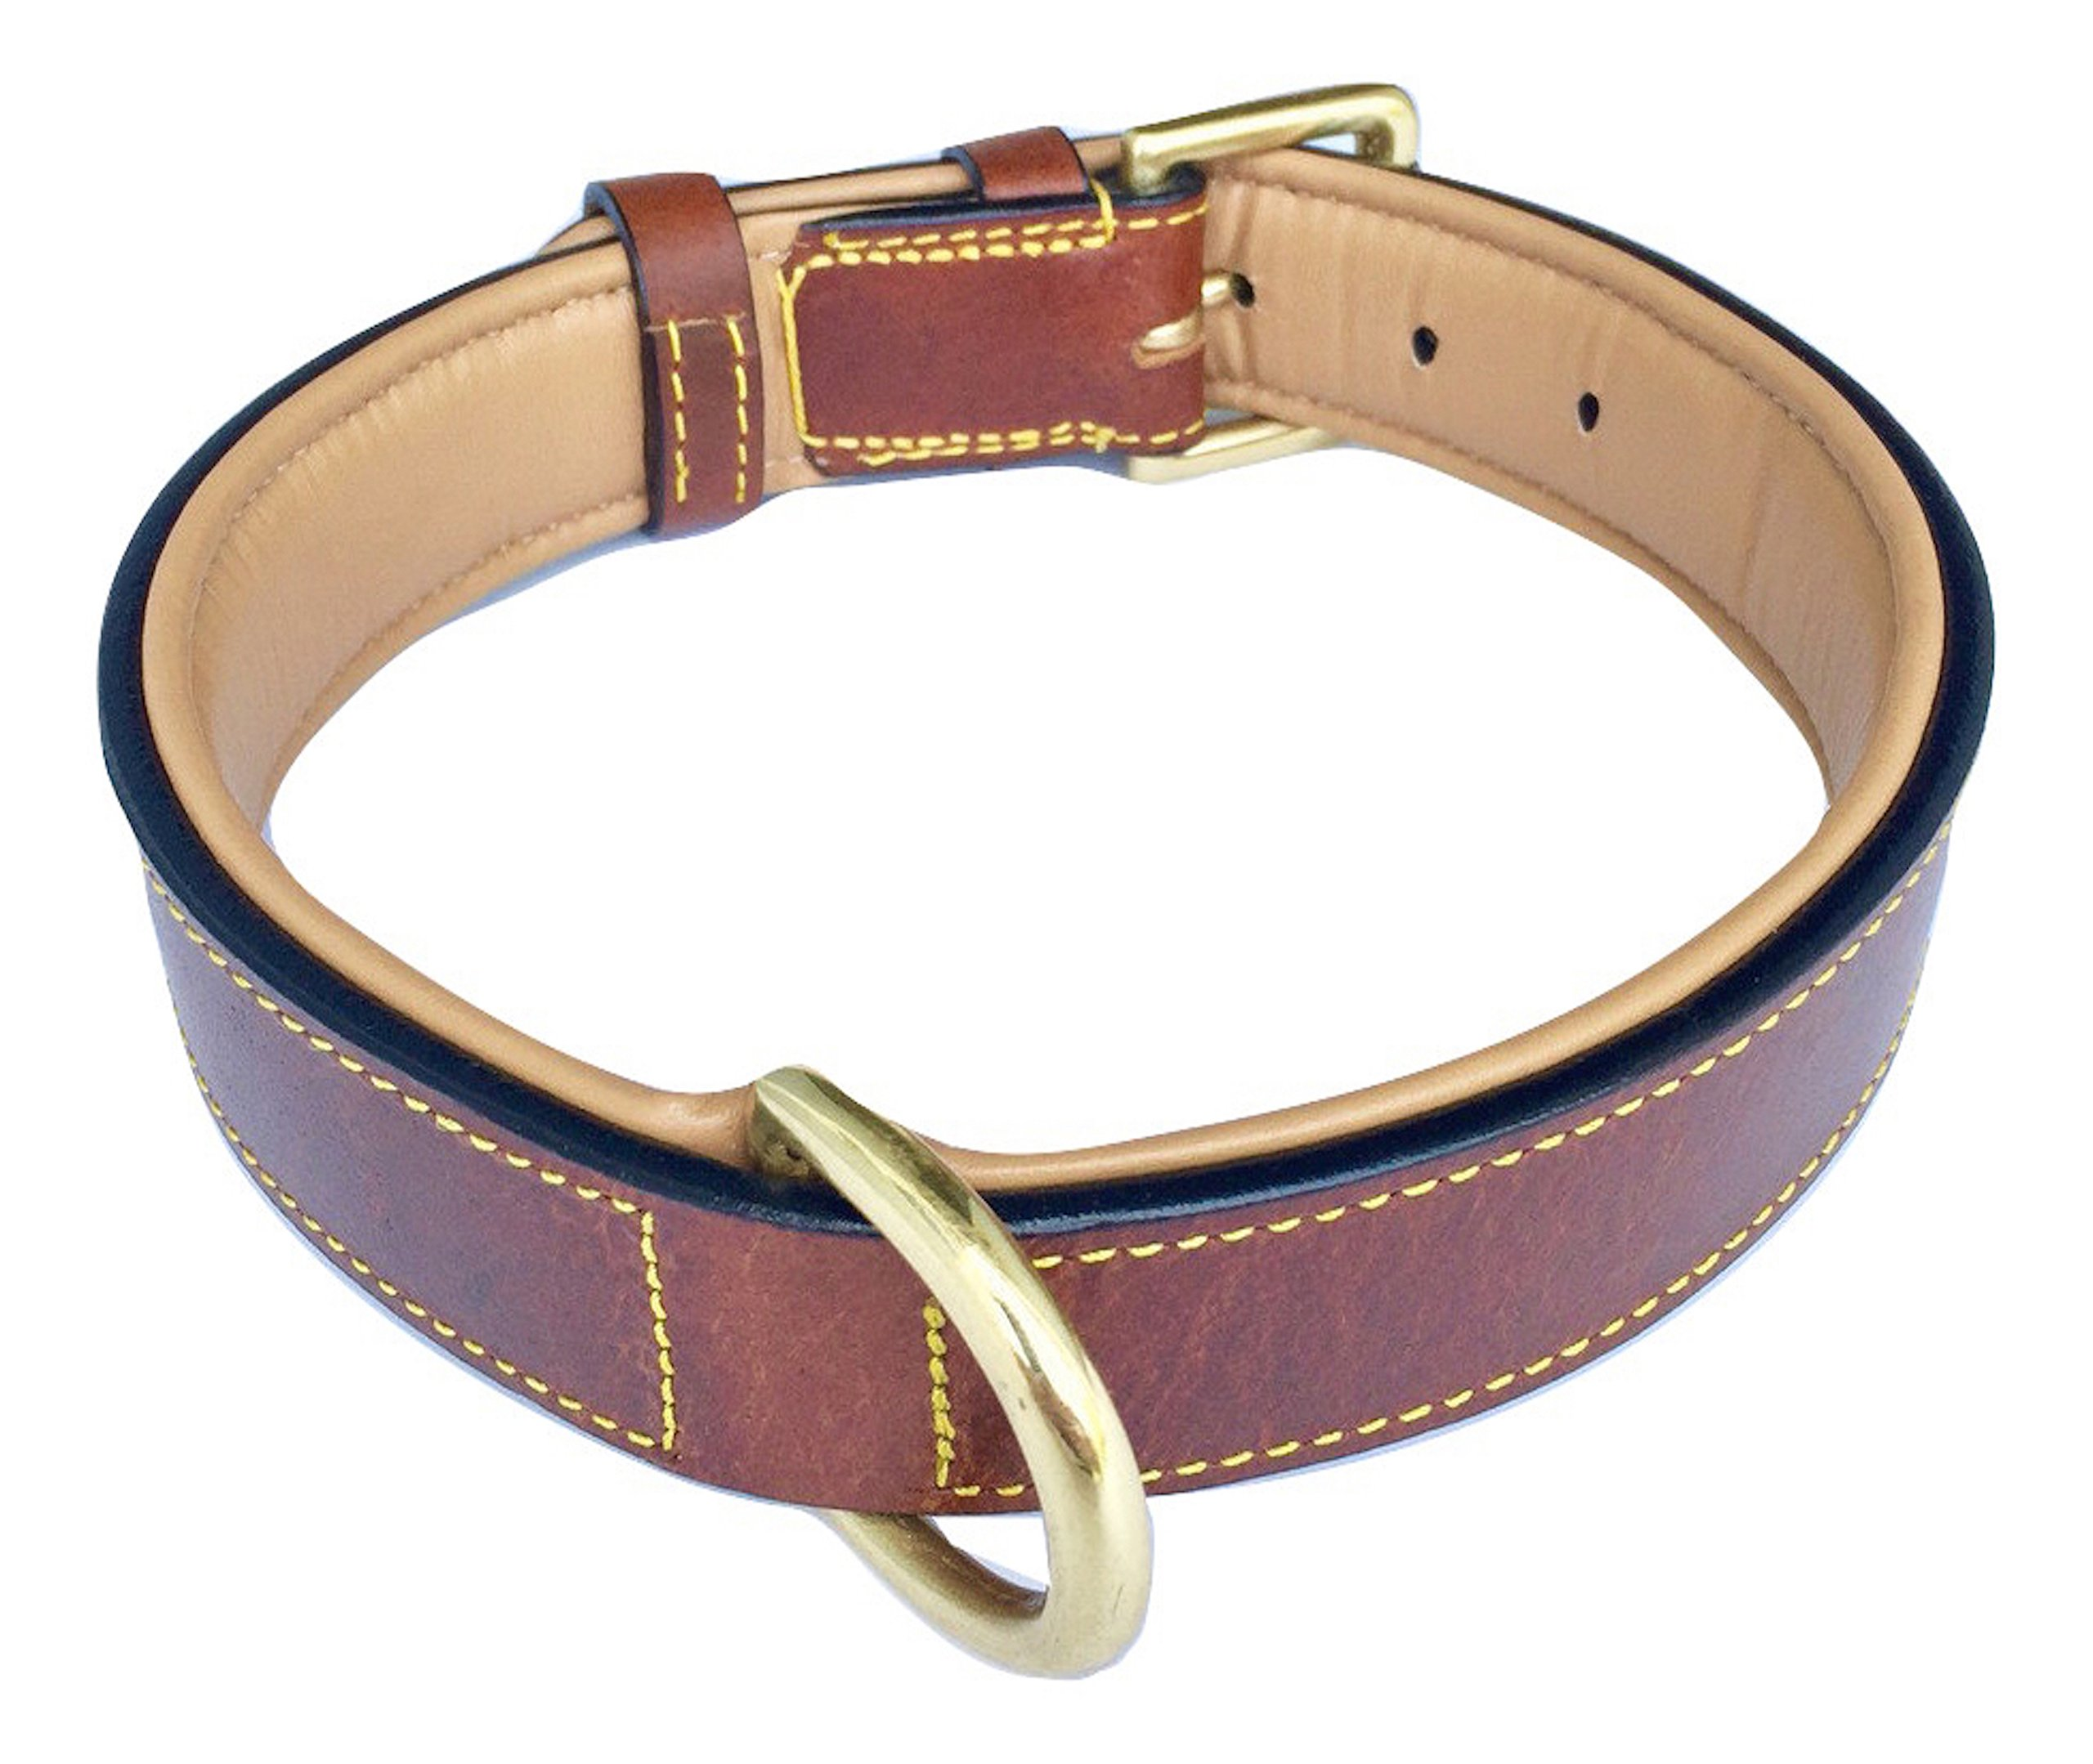 Soft Touch Collars Real Leather Padded Dog Collar, XL Brown, 28'' Inches Long x 1.75'' Inches Wide, Neck Size 22'' to 25'', Full Grain Genuine Luxury Leather for XLarge Dogs by Soft Touch Collars (Image #2)